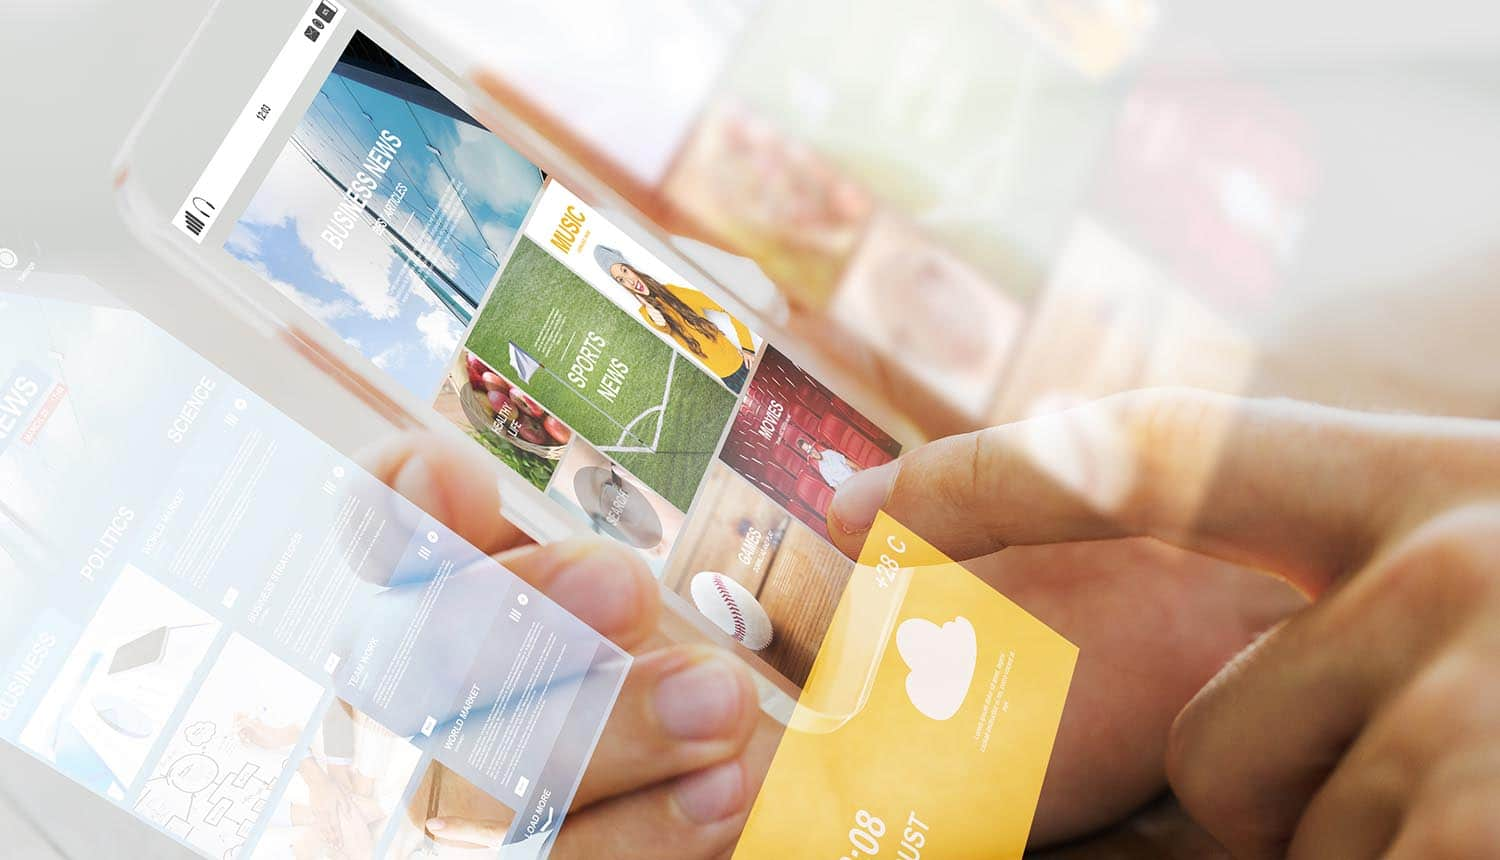 Close up of hand holding transparent smartphone with common ideas for websites